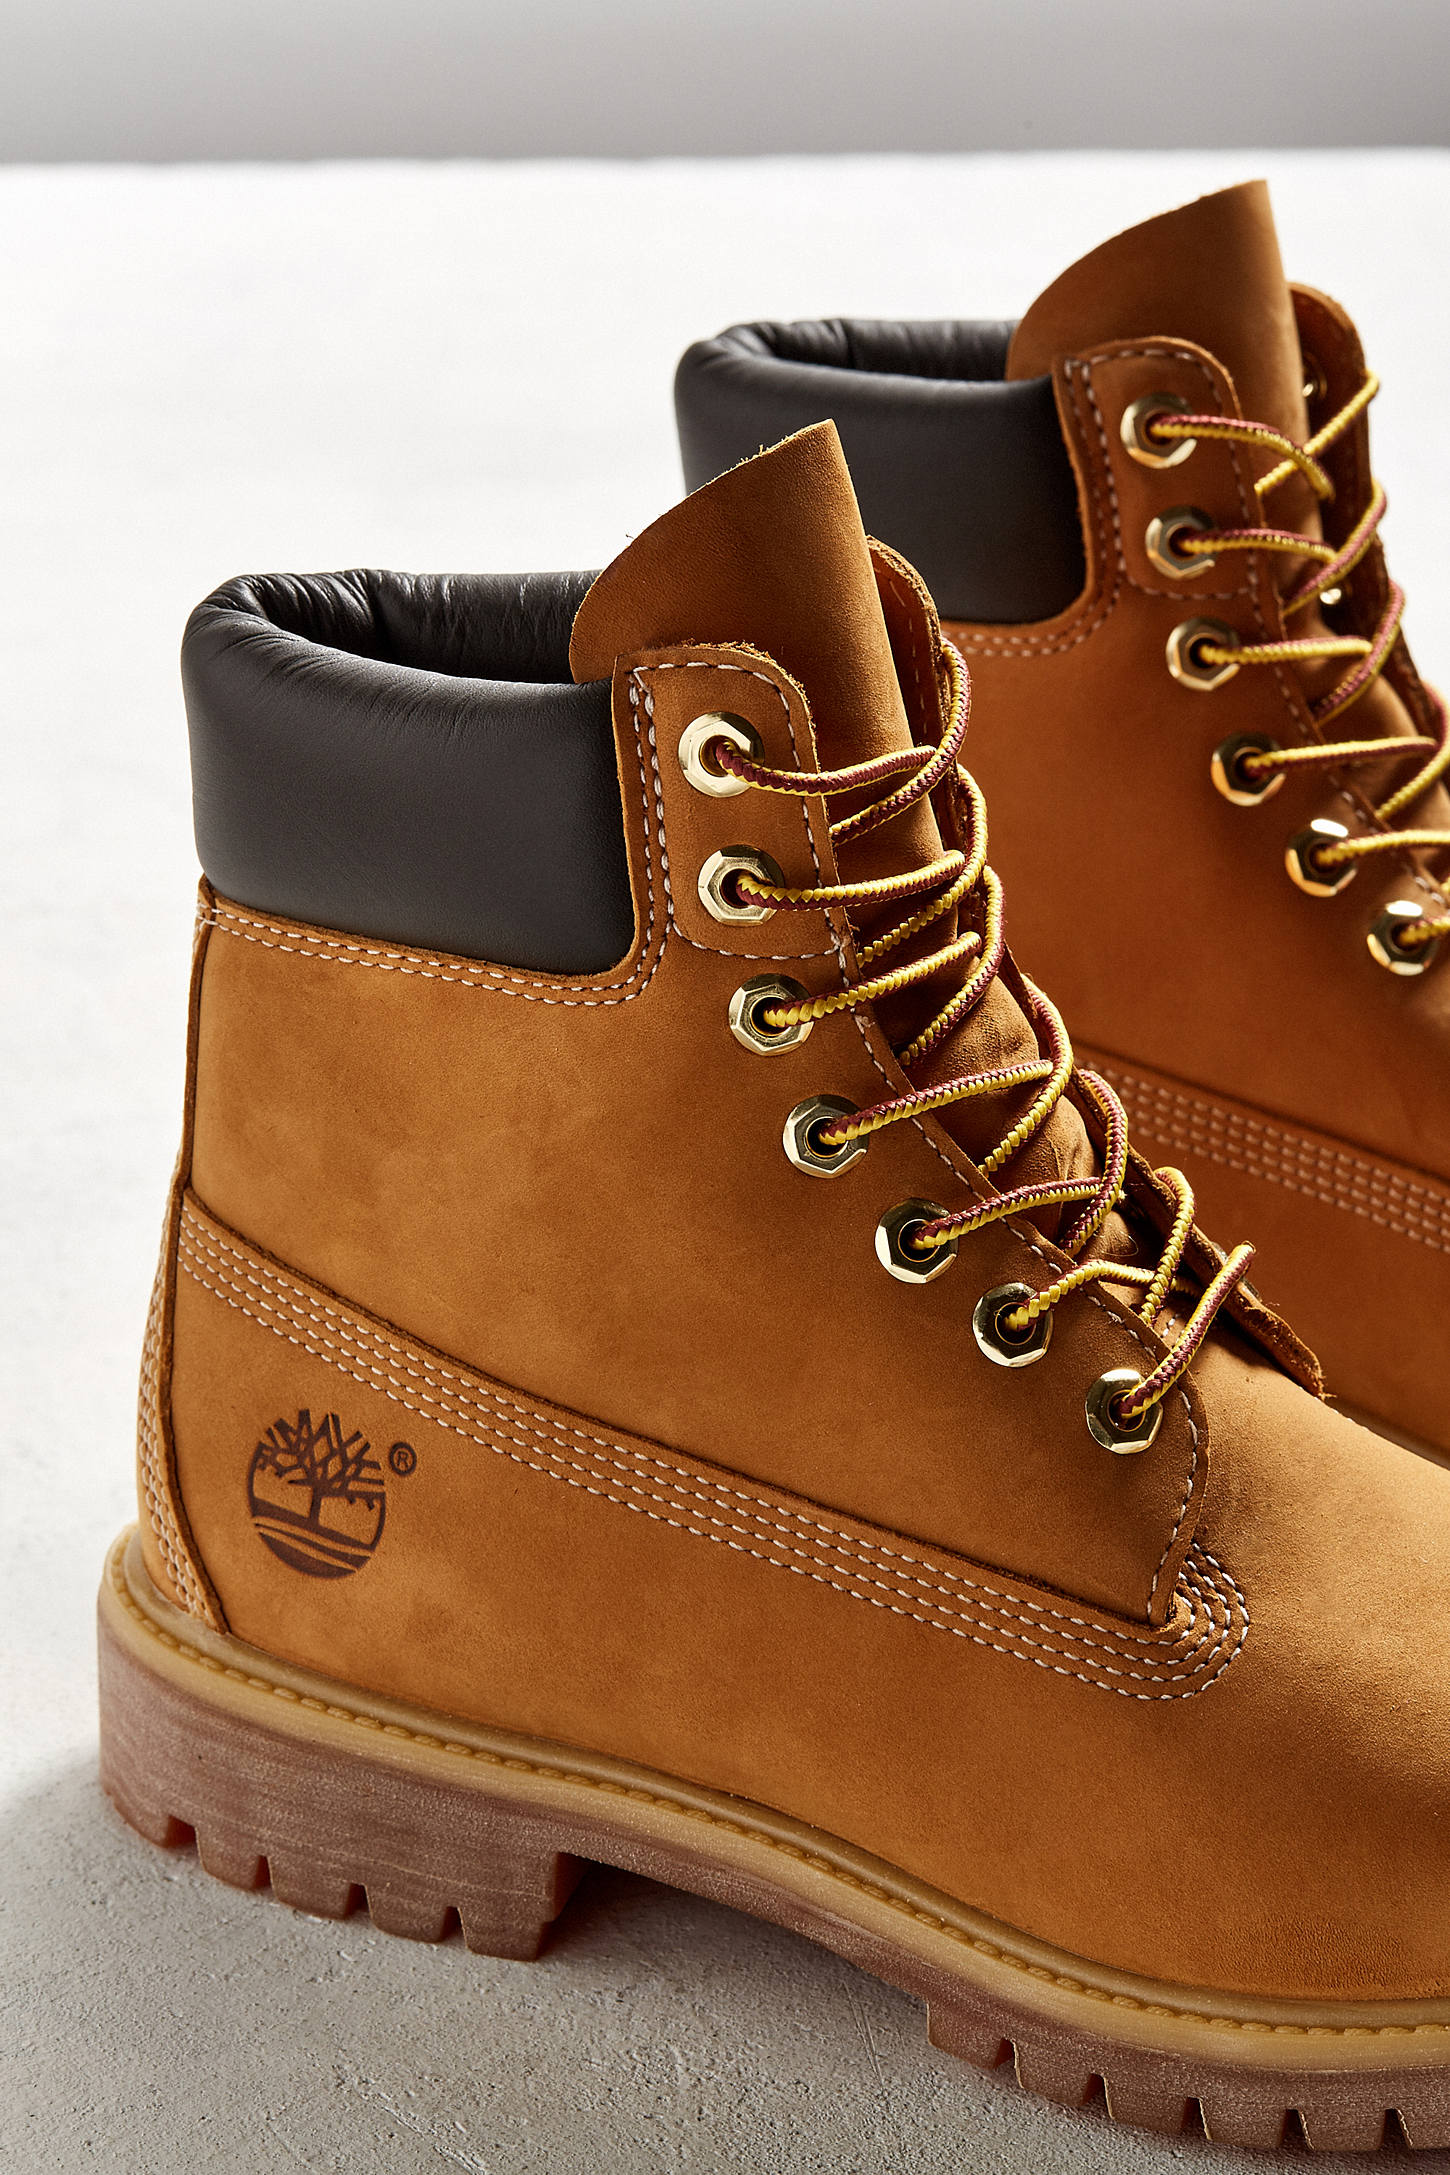 Timberland Classic Work Boot   Urban Outfitters